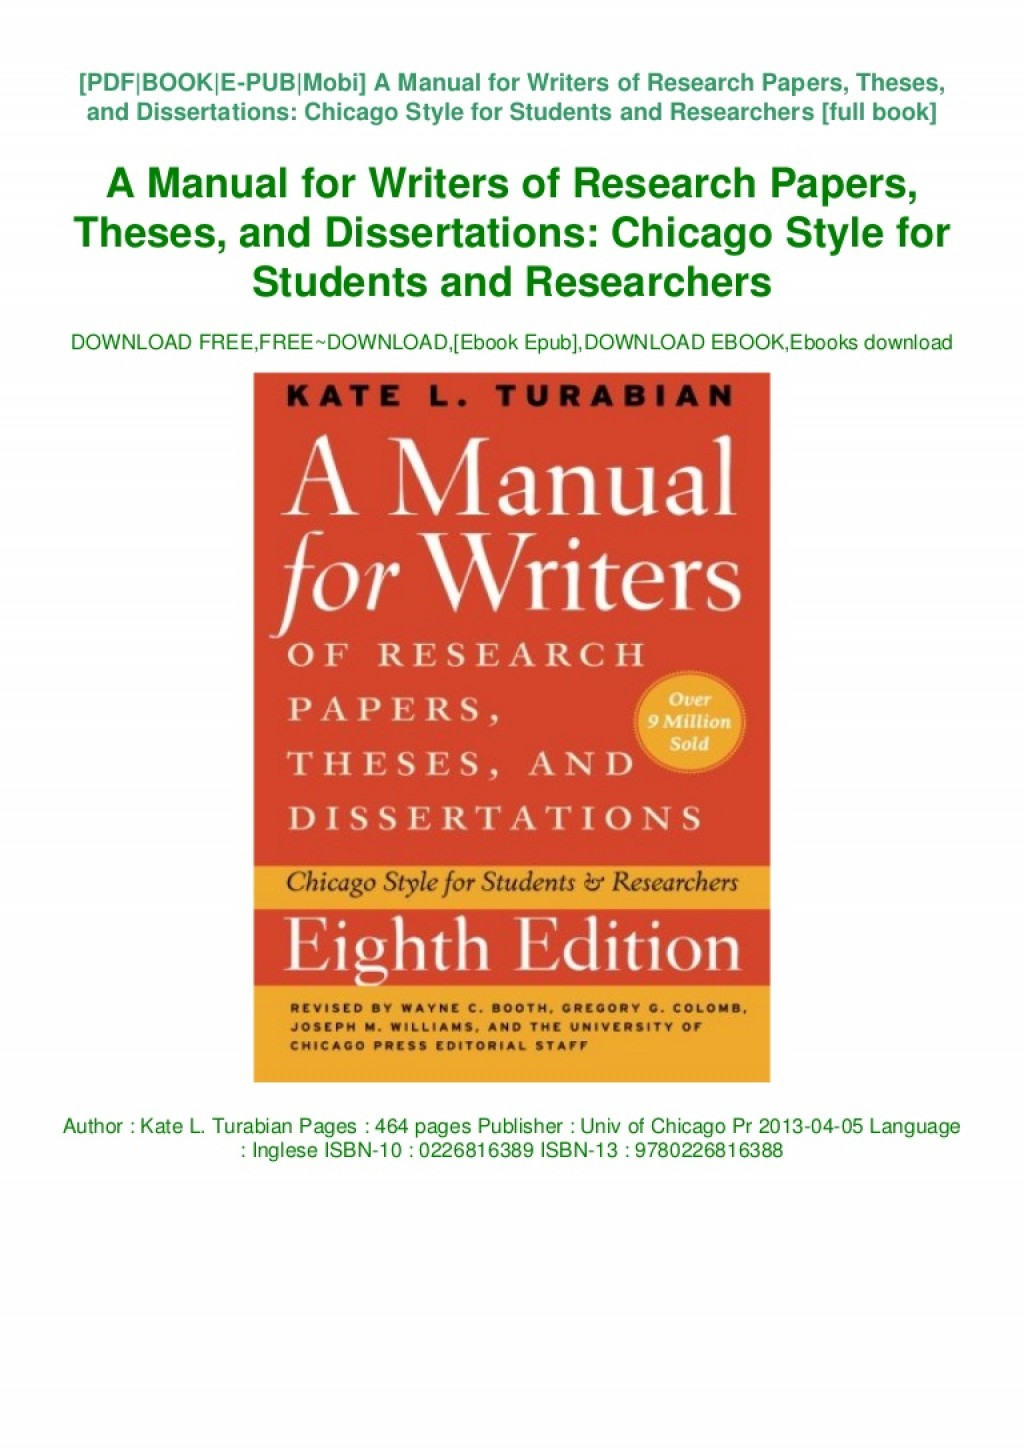 005 Book Manual For Writers Of Researchs Theses And Thumbnail Dissertations Sensational A Research Papers Eighth Edition Pdf 9th 8th Large